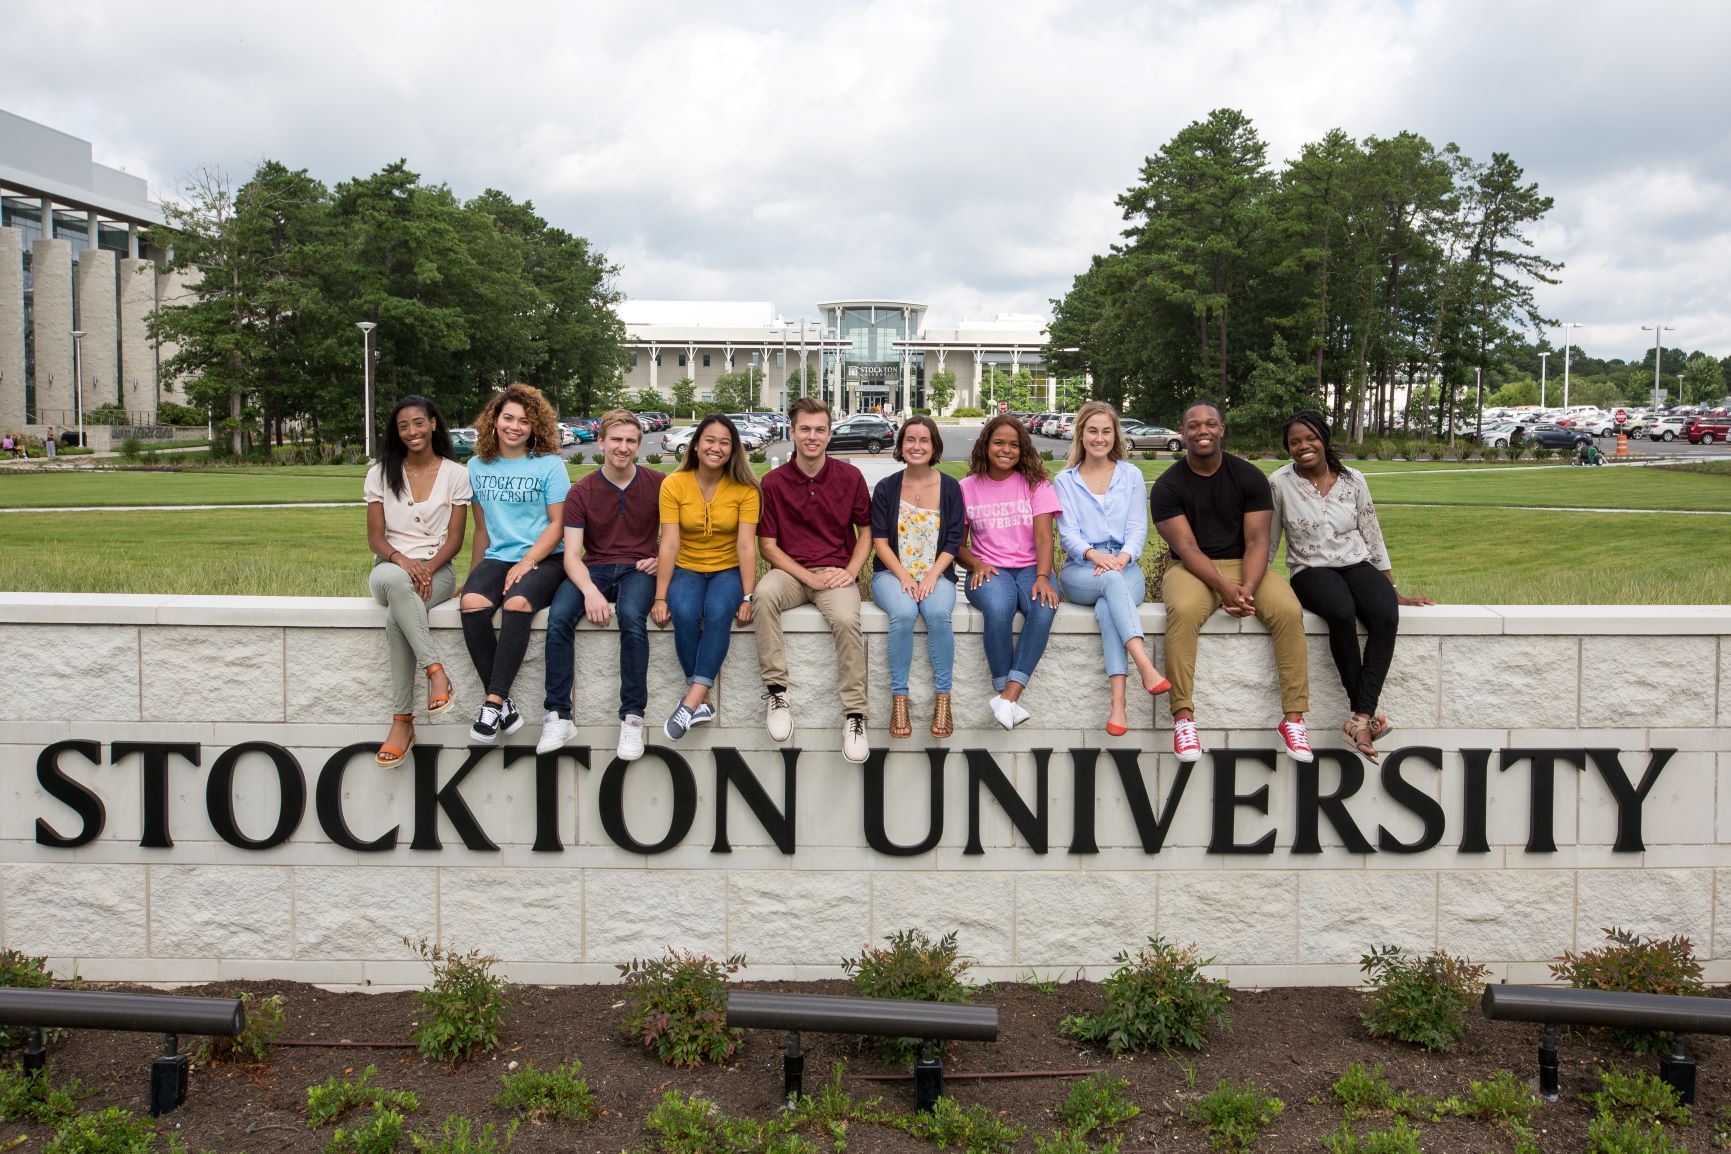 stockton univeristy students on sign